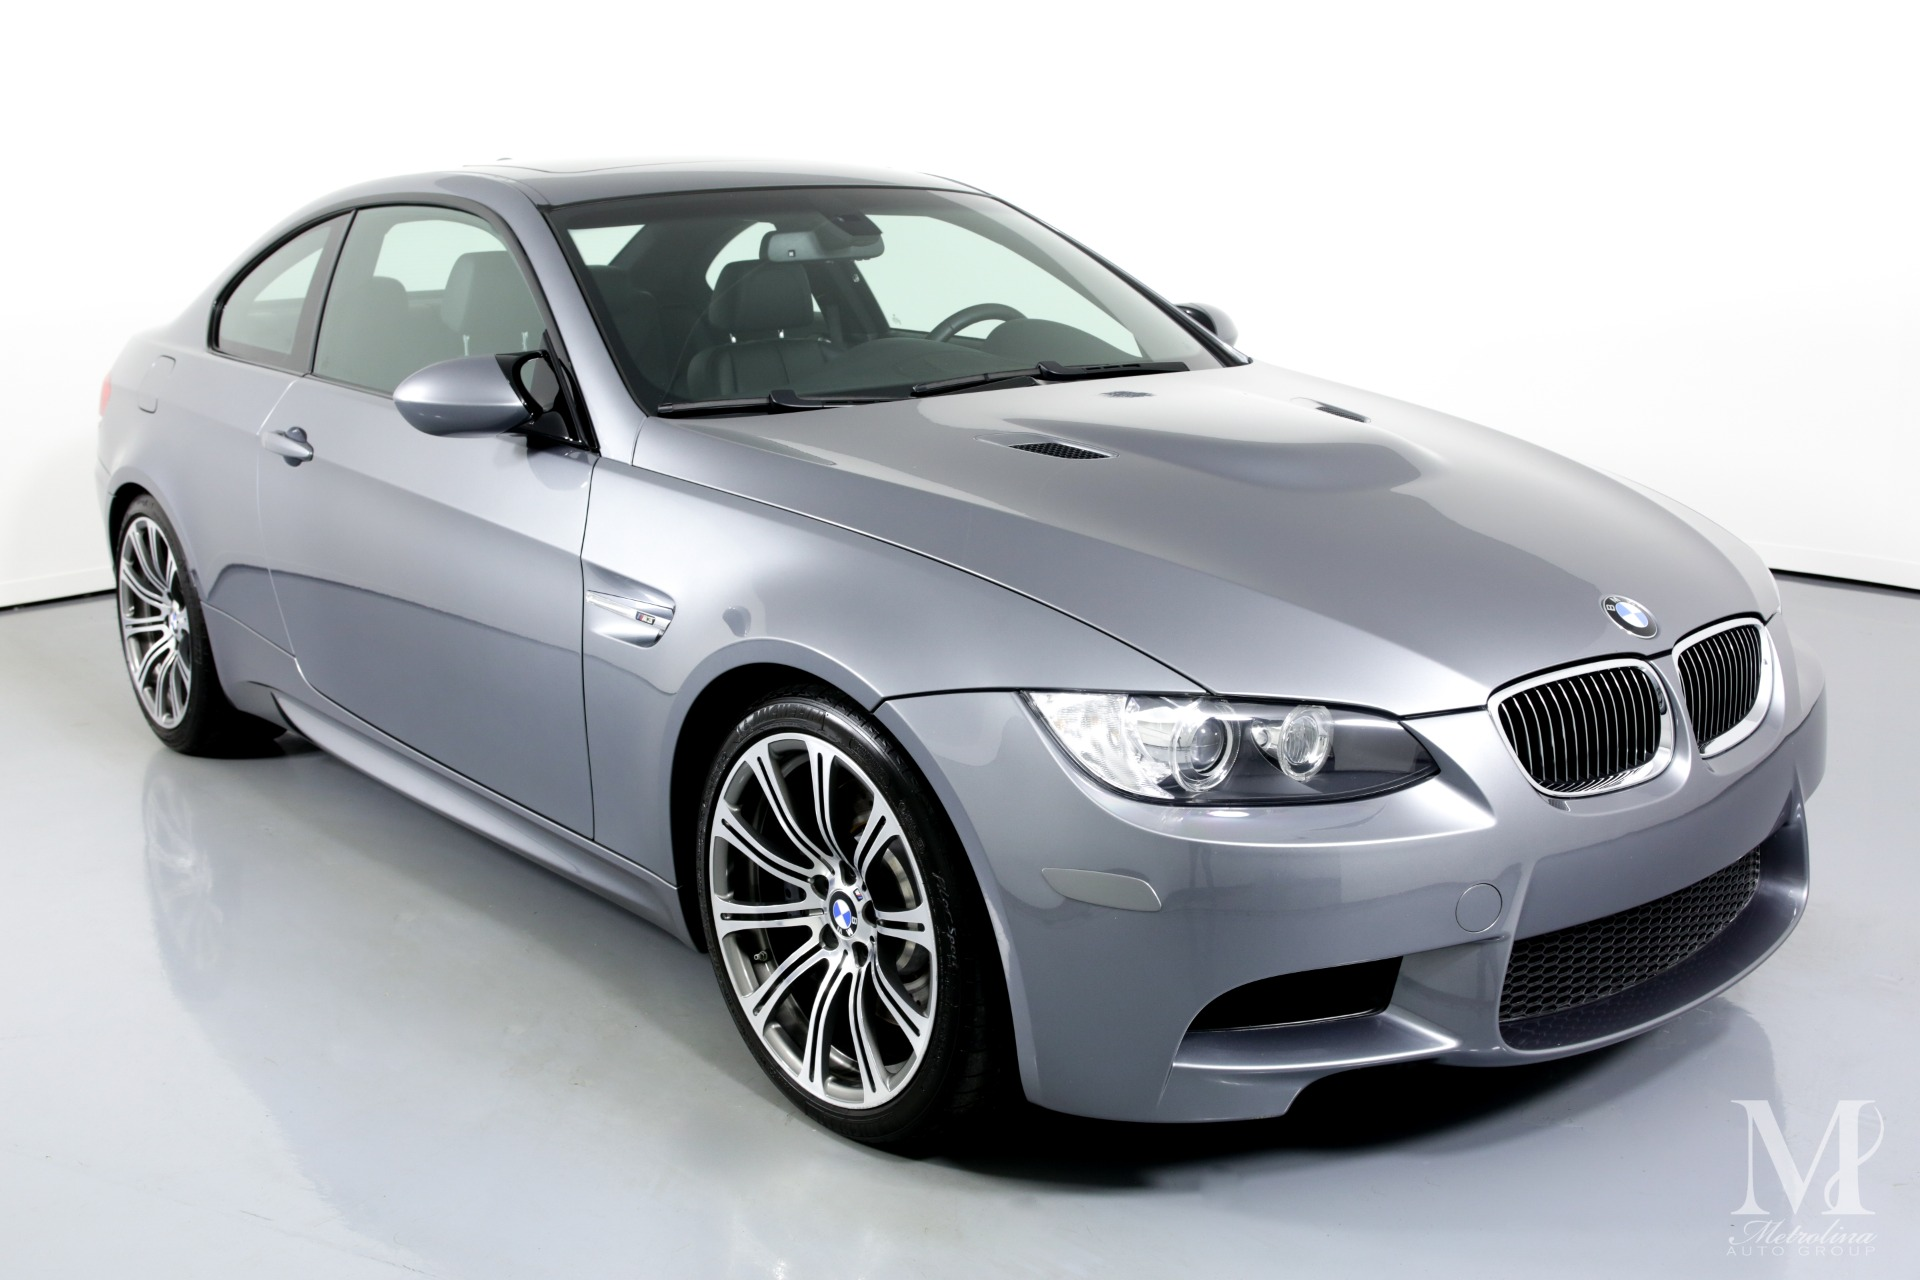 Used 2009 BMW M3 Base 2dr Coupe for sale $29,996 at Metrolina Auto Group in Charlotte NC 28217 - 2